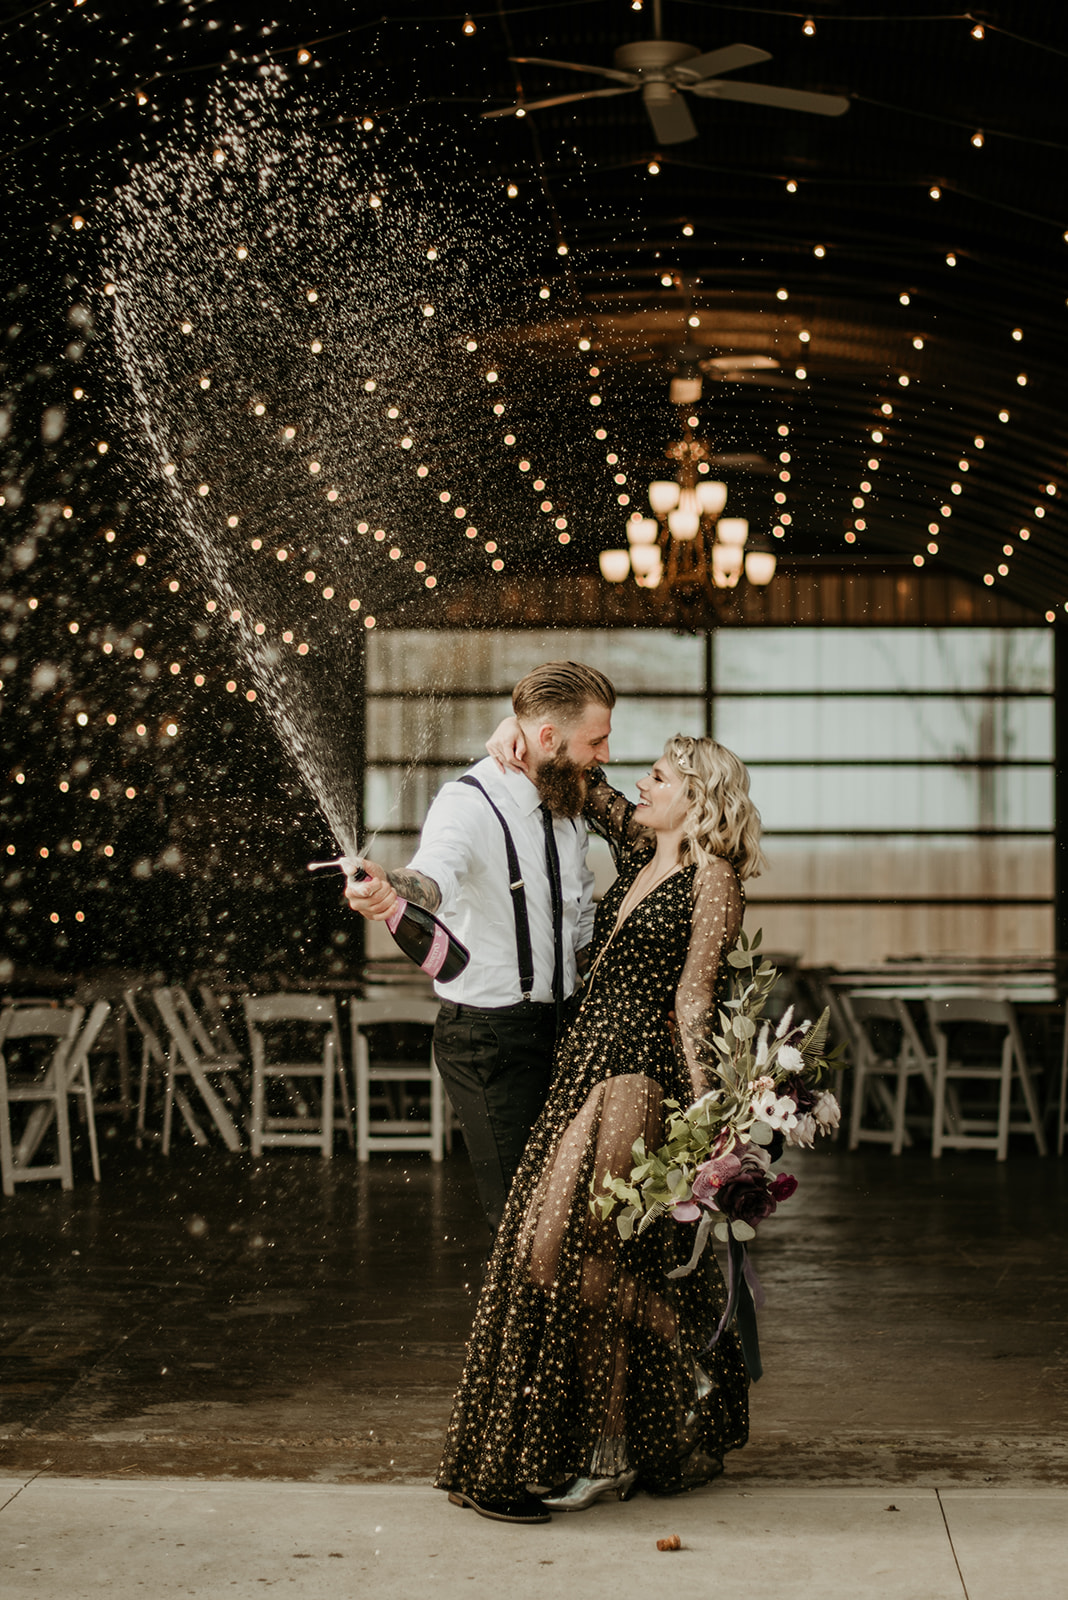 1.CHOOSE AN EVENT - We offer packages for micro-weddings, elopements and engagements.